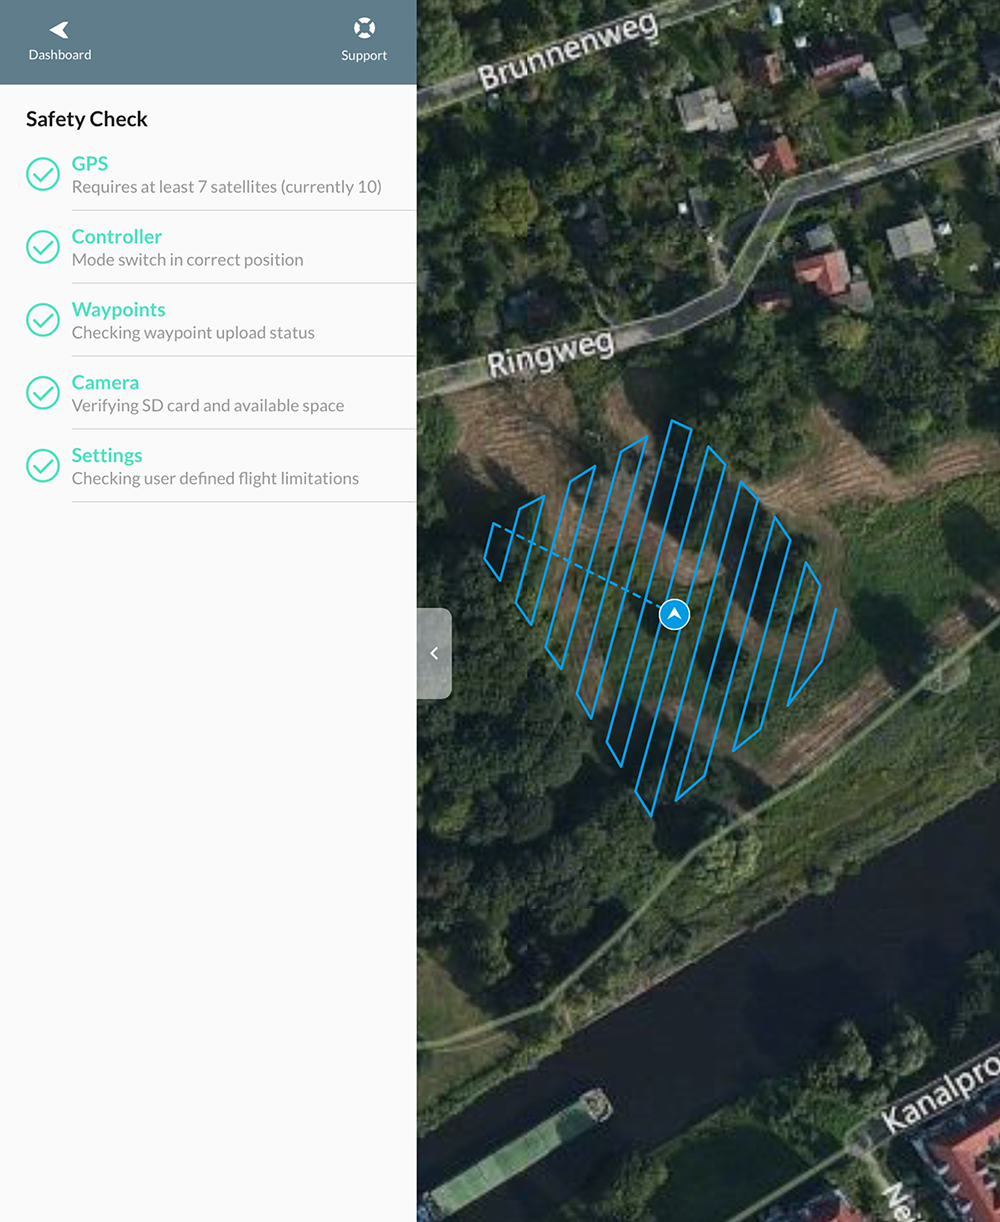 Drone Deploy and DJIs POI Mode copter image acquisitions